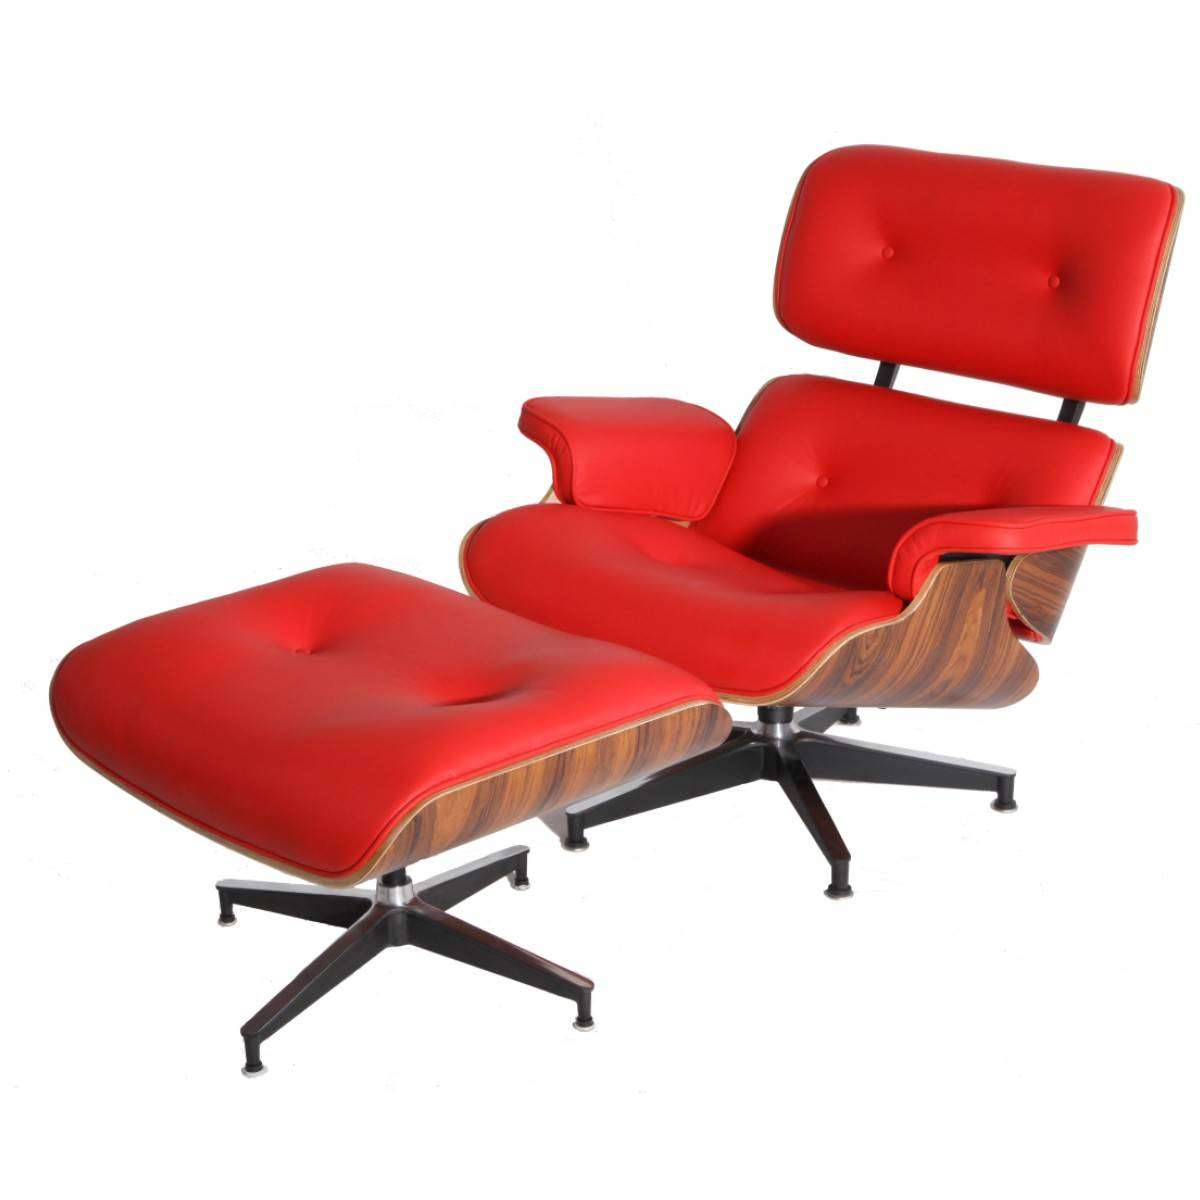 MOD Lounge Chair Amp Ottoman Red Palisander